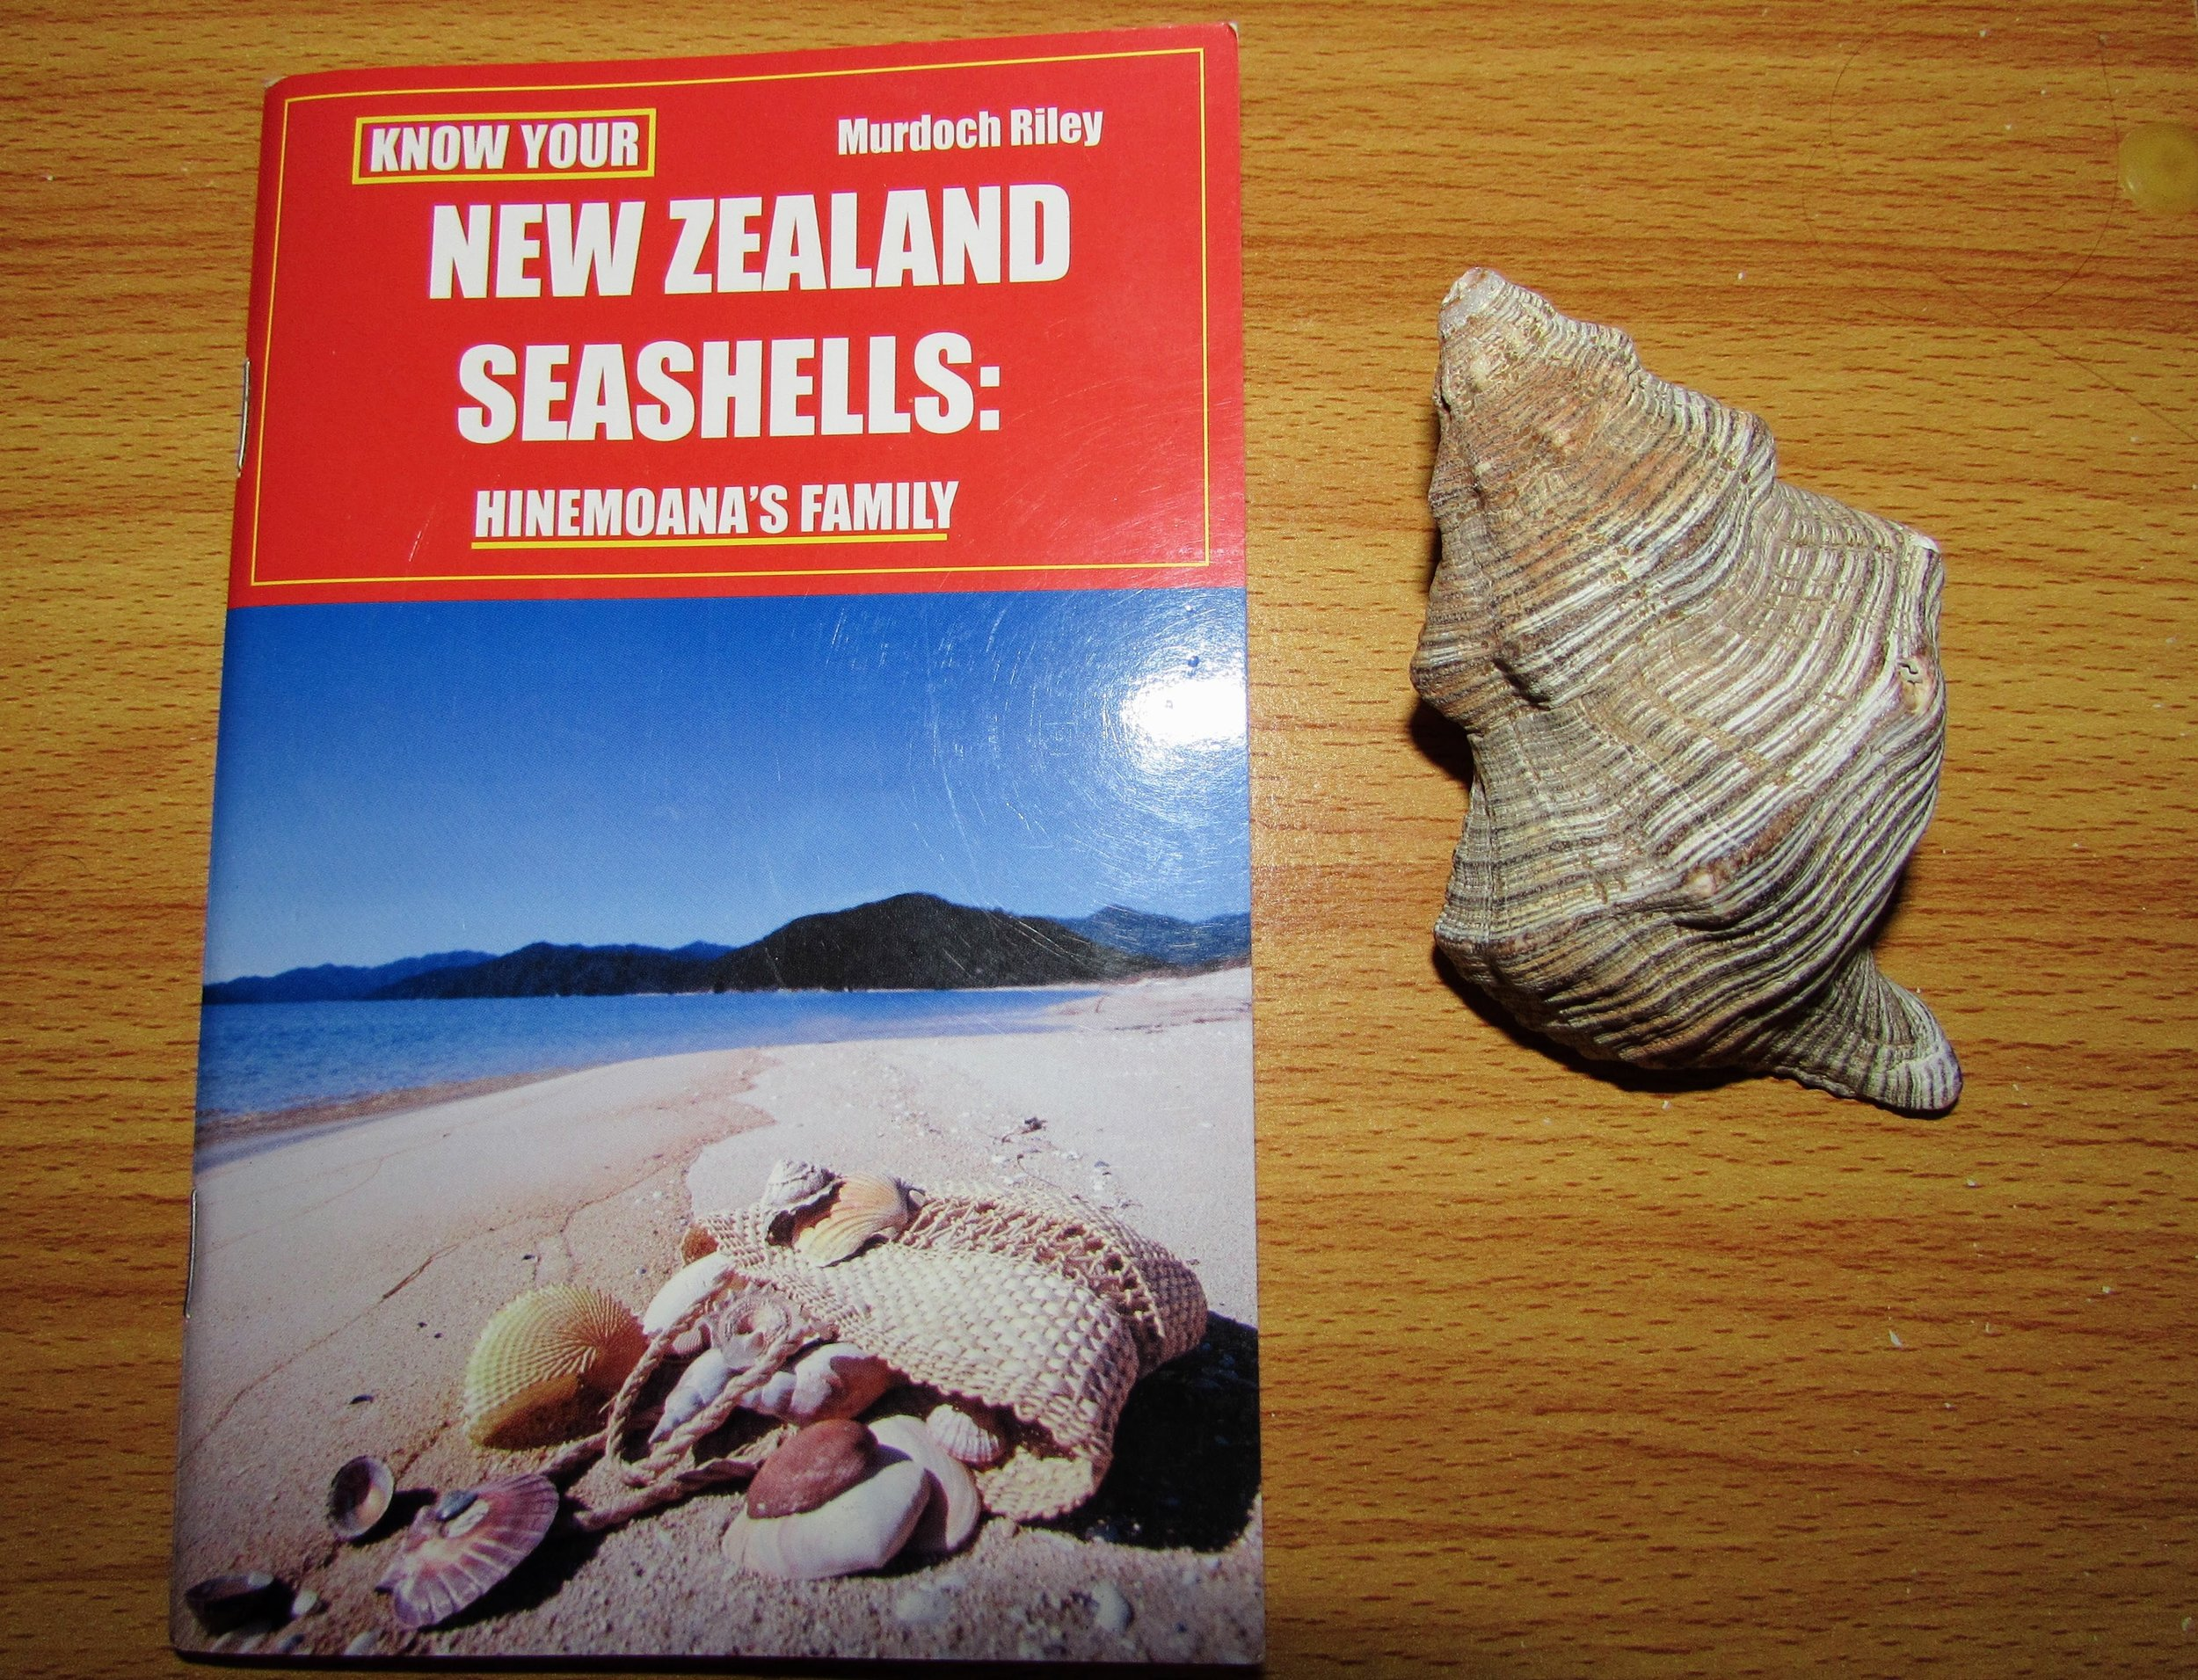 In one of Paihia's book shops, I bought this New Zealand seashell guide. Next to it is a palm-sized worn siphon whelk that Emmett found, also in Paihia.